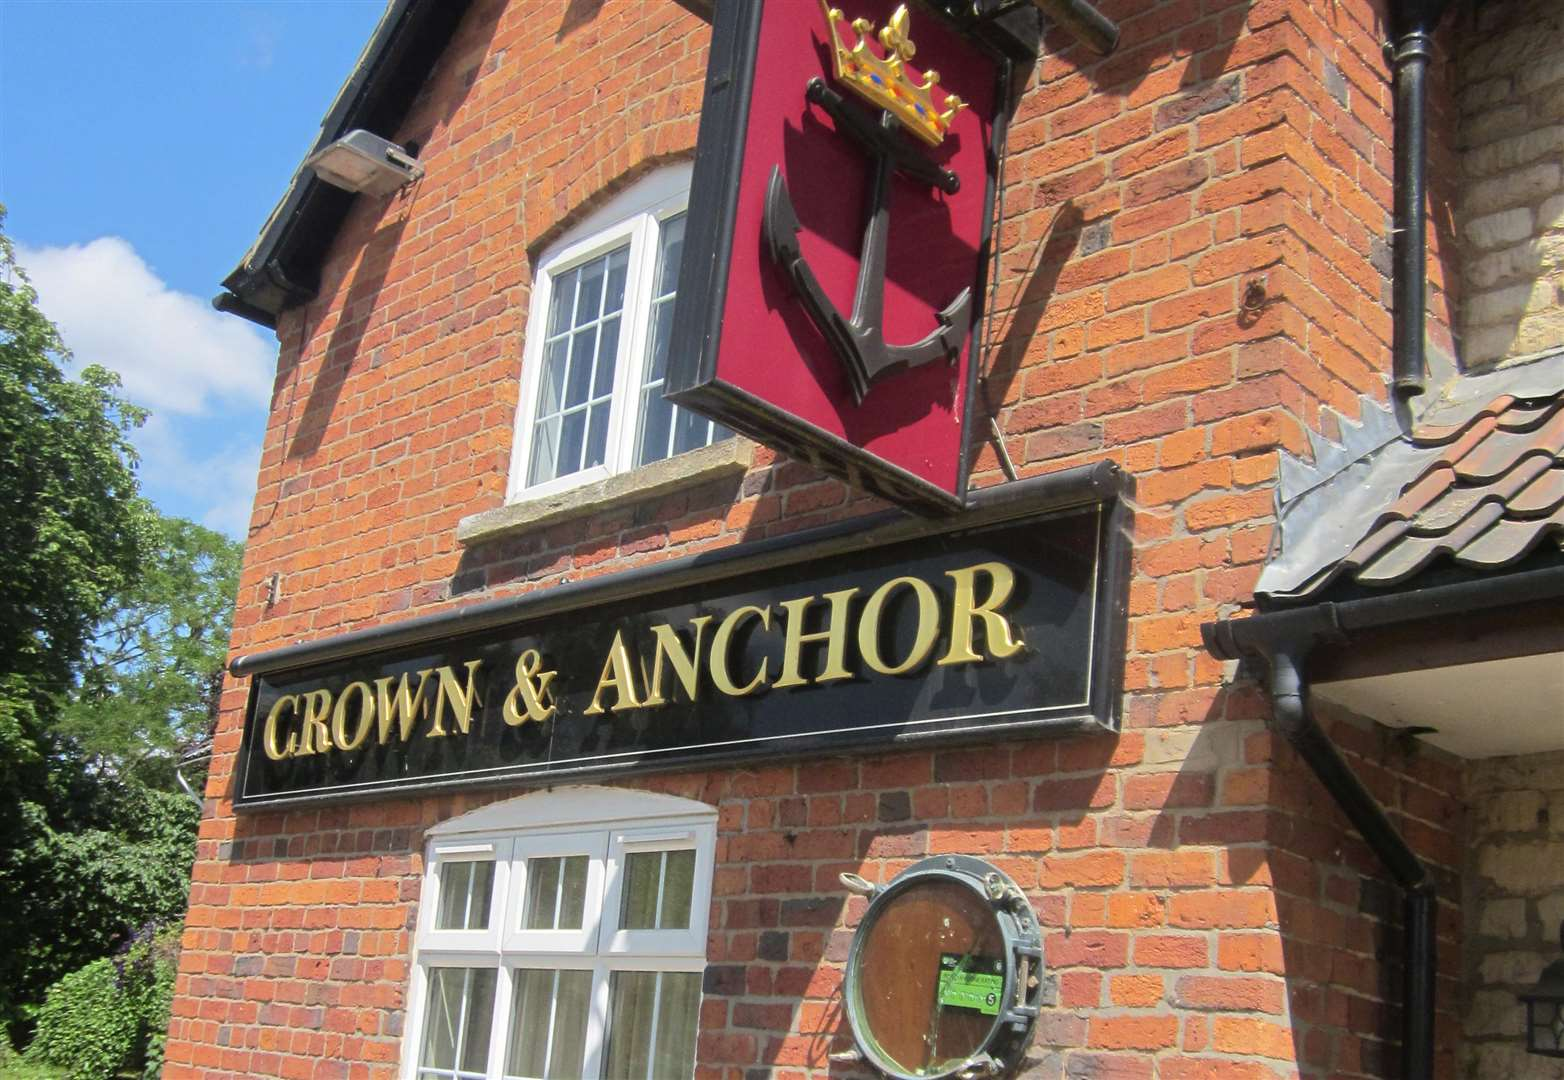 Crown & Anchor in Welby to re-open next month